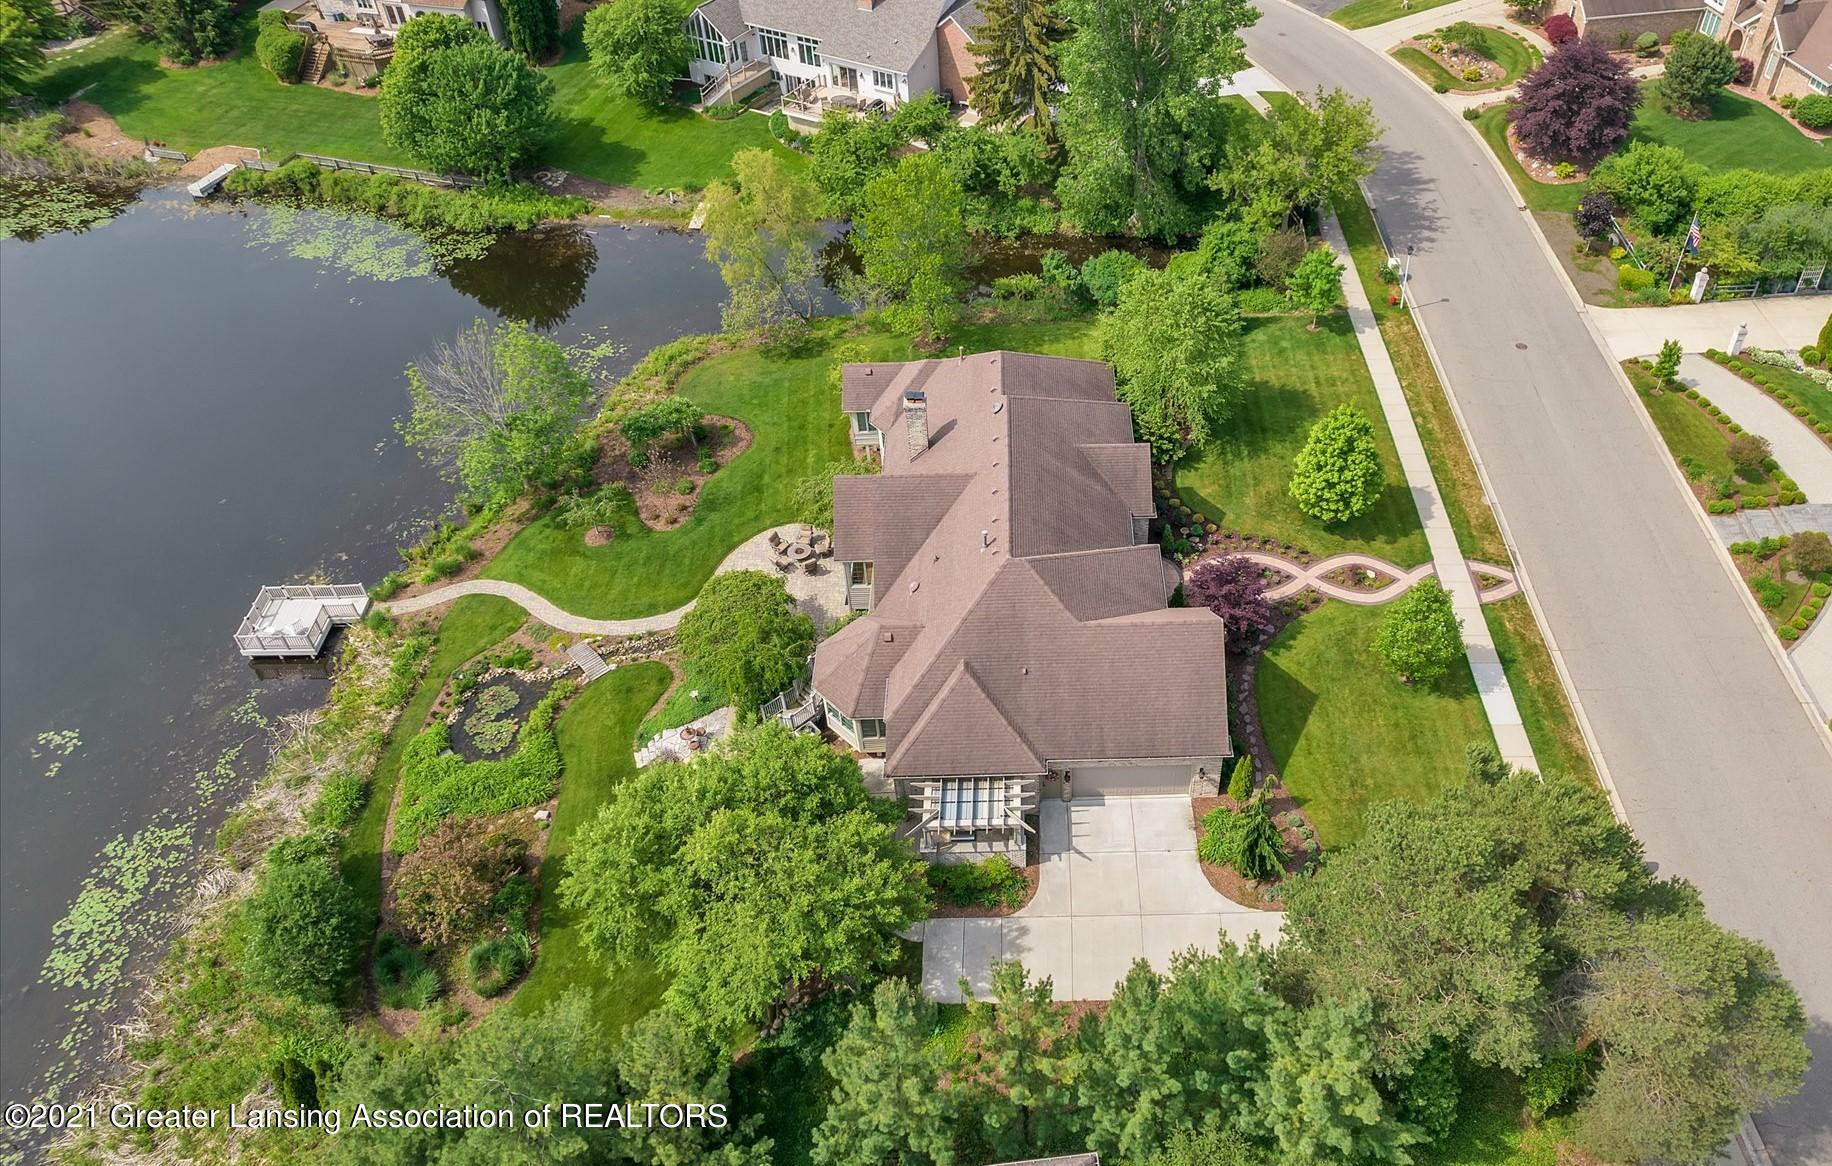 6330 Pine Hollow Dr - EXTERIOR Aerial View - 67